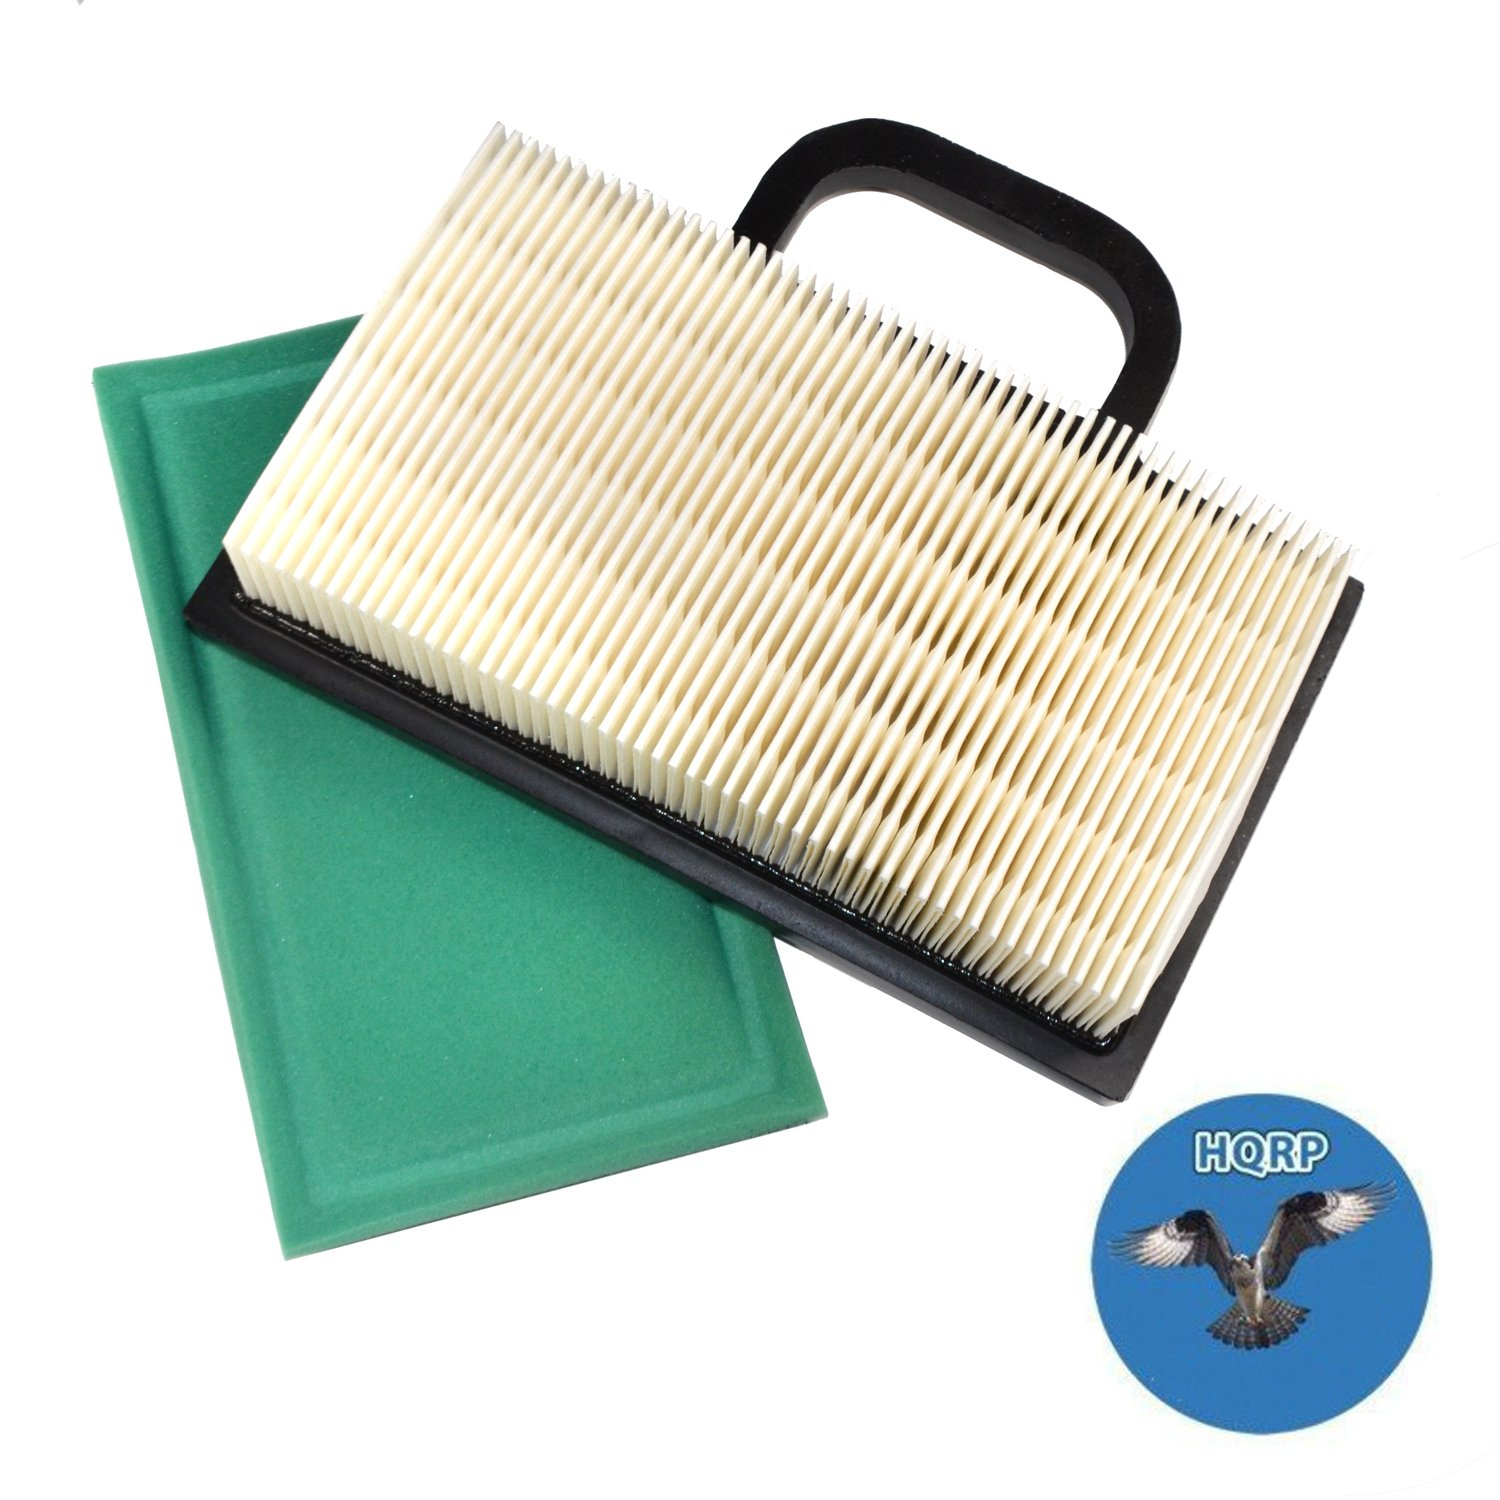 HQRP Air Filter Cartridge w/Pre-Cleaner for Craftsman GT5000 GT3000 DYS4500 YS4500 Garden Tractors, 33926 Replacement Coaster